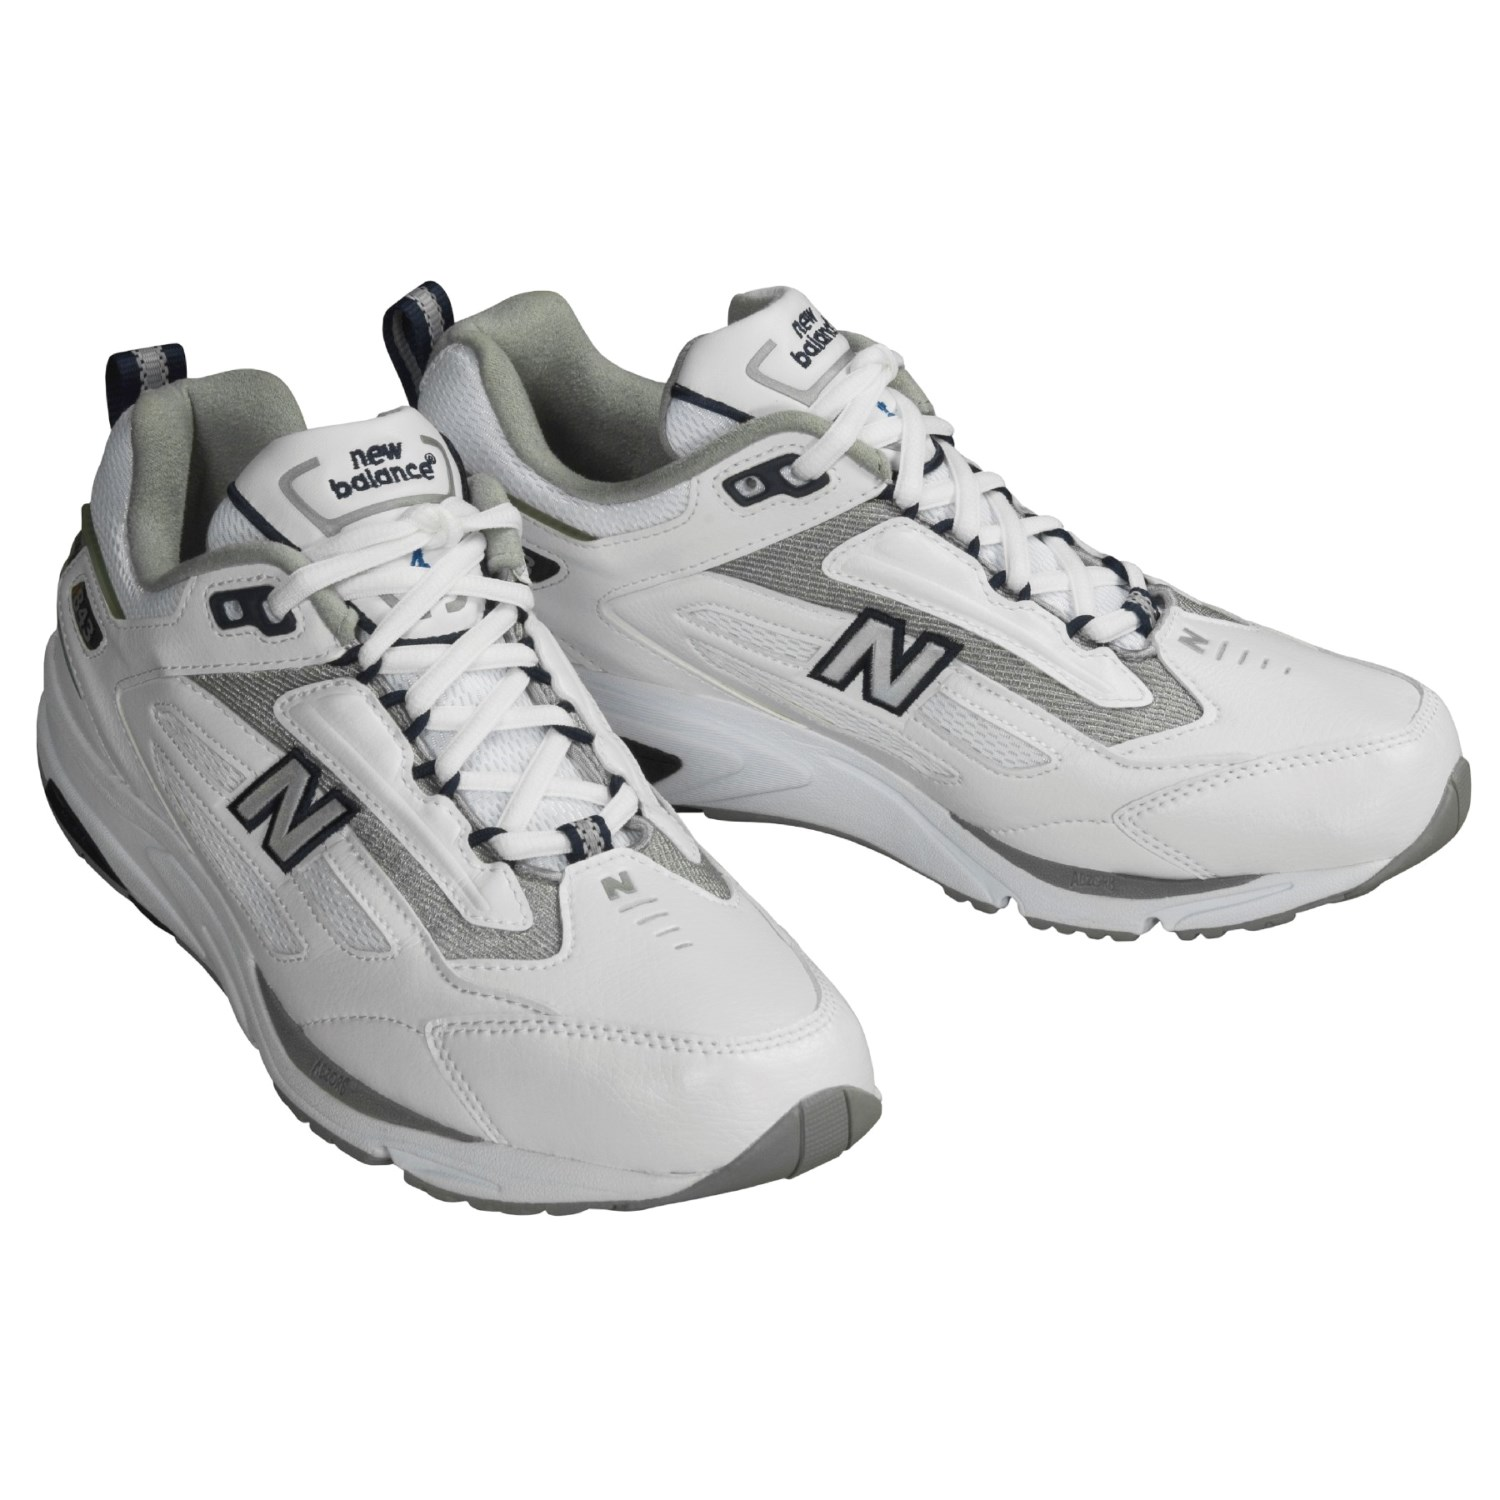 New Balance Outlet Store for discounts up to 65% off on New Balance shoes, Buy New Balance from our cheap New Balance Outlet Store online now! Select Your Currency New Balance American Giant mens shoes Black British Golden. $